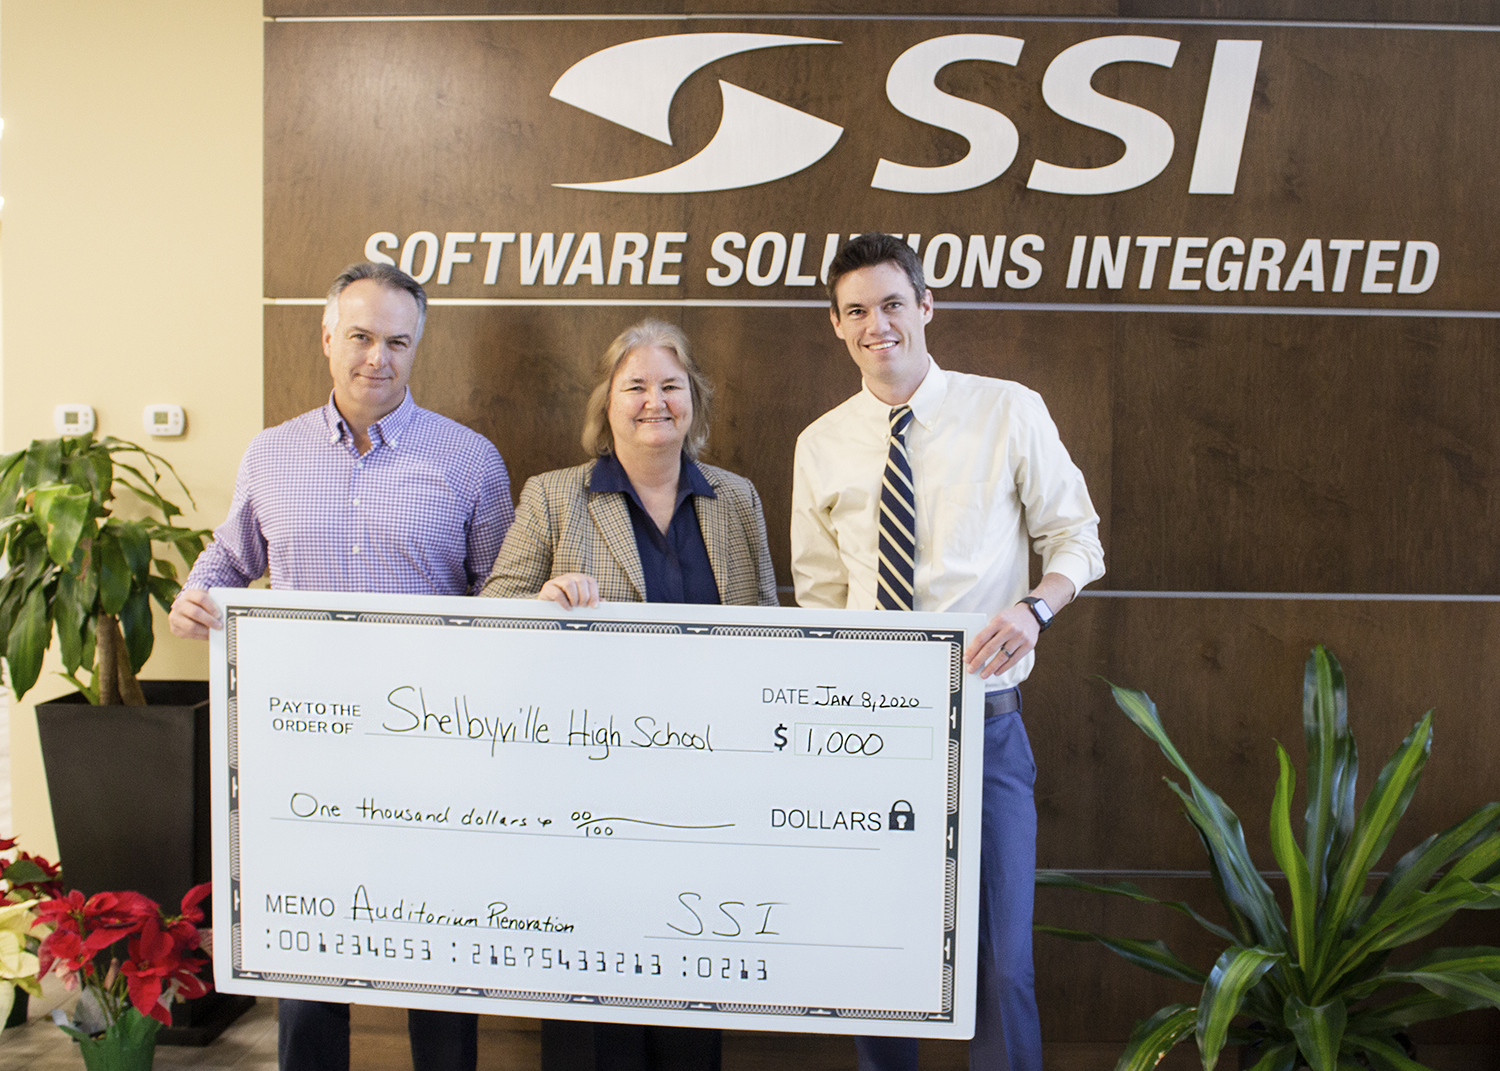 PHOTO: (Left to Right: DaveCraft, SSI Vice-President of Marketing, Pam Rincker, SSI President and KyleLadd, Shelbyville High School Principal).